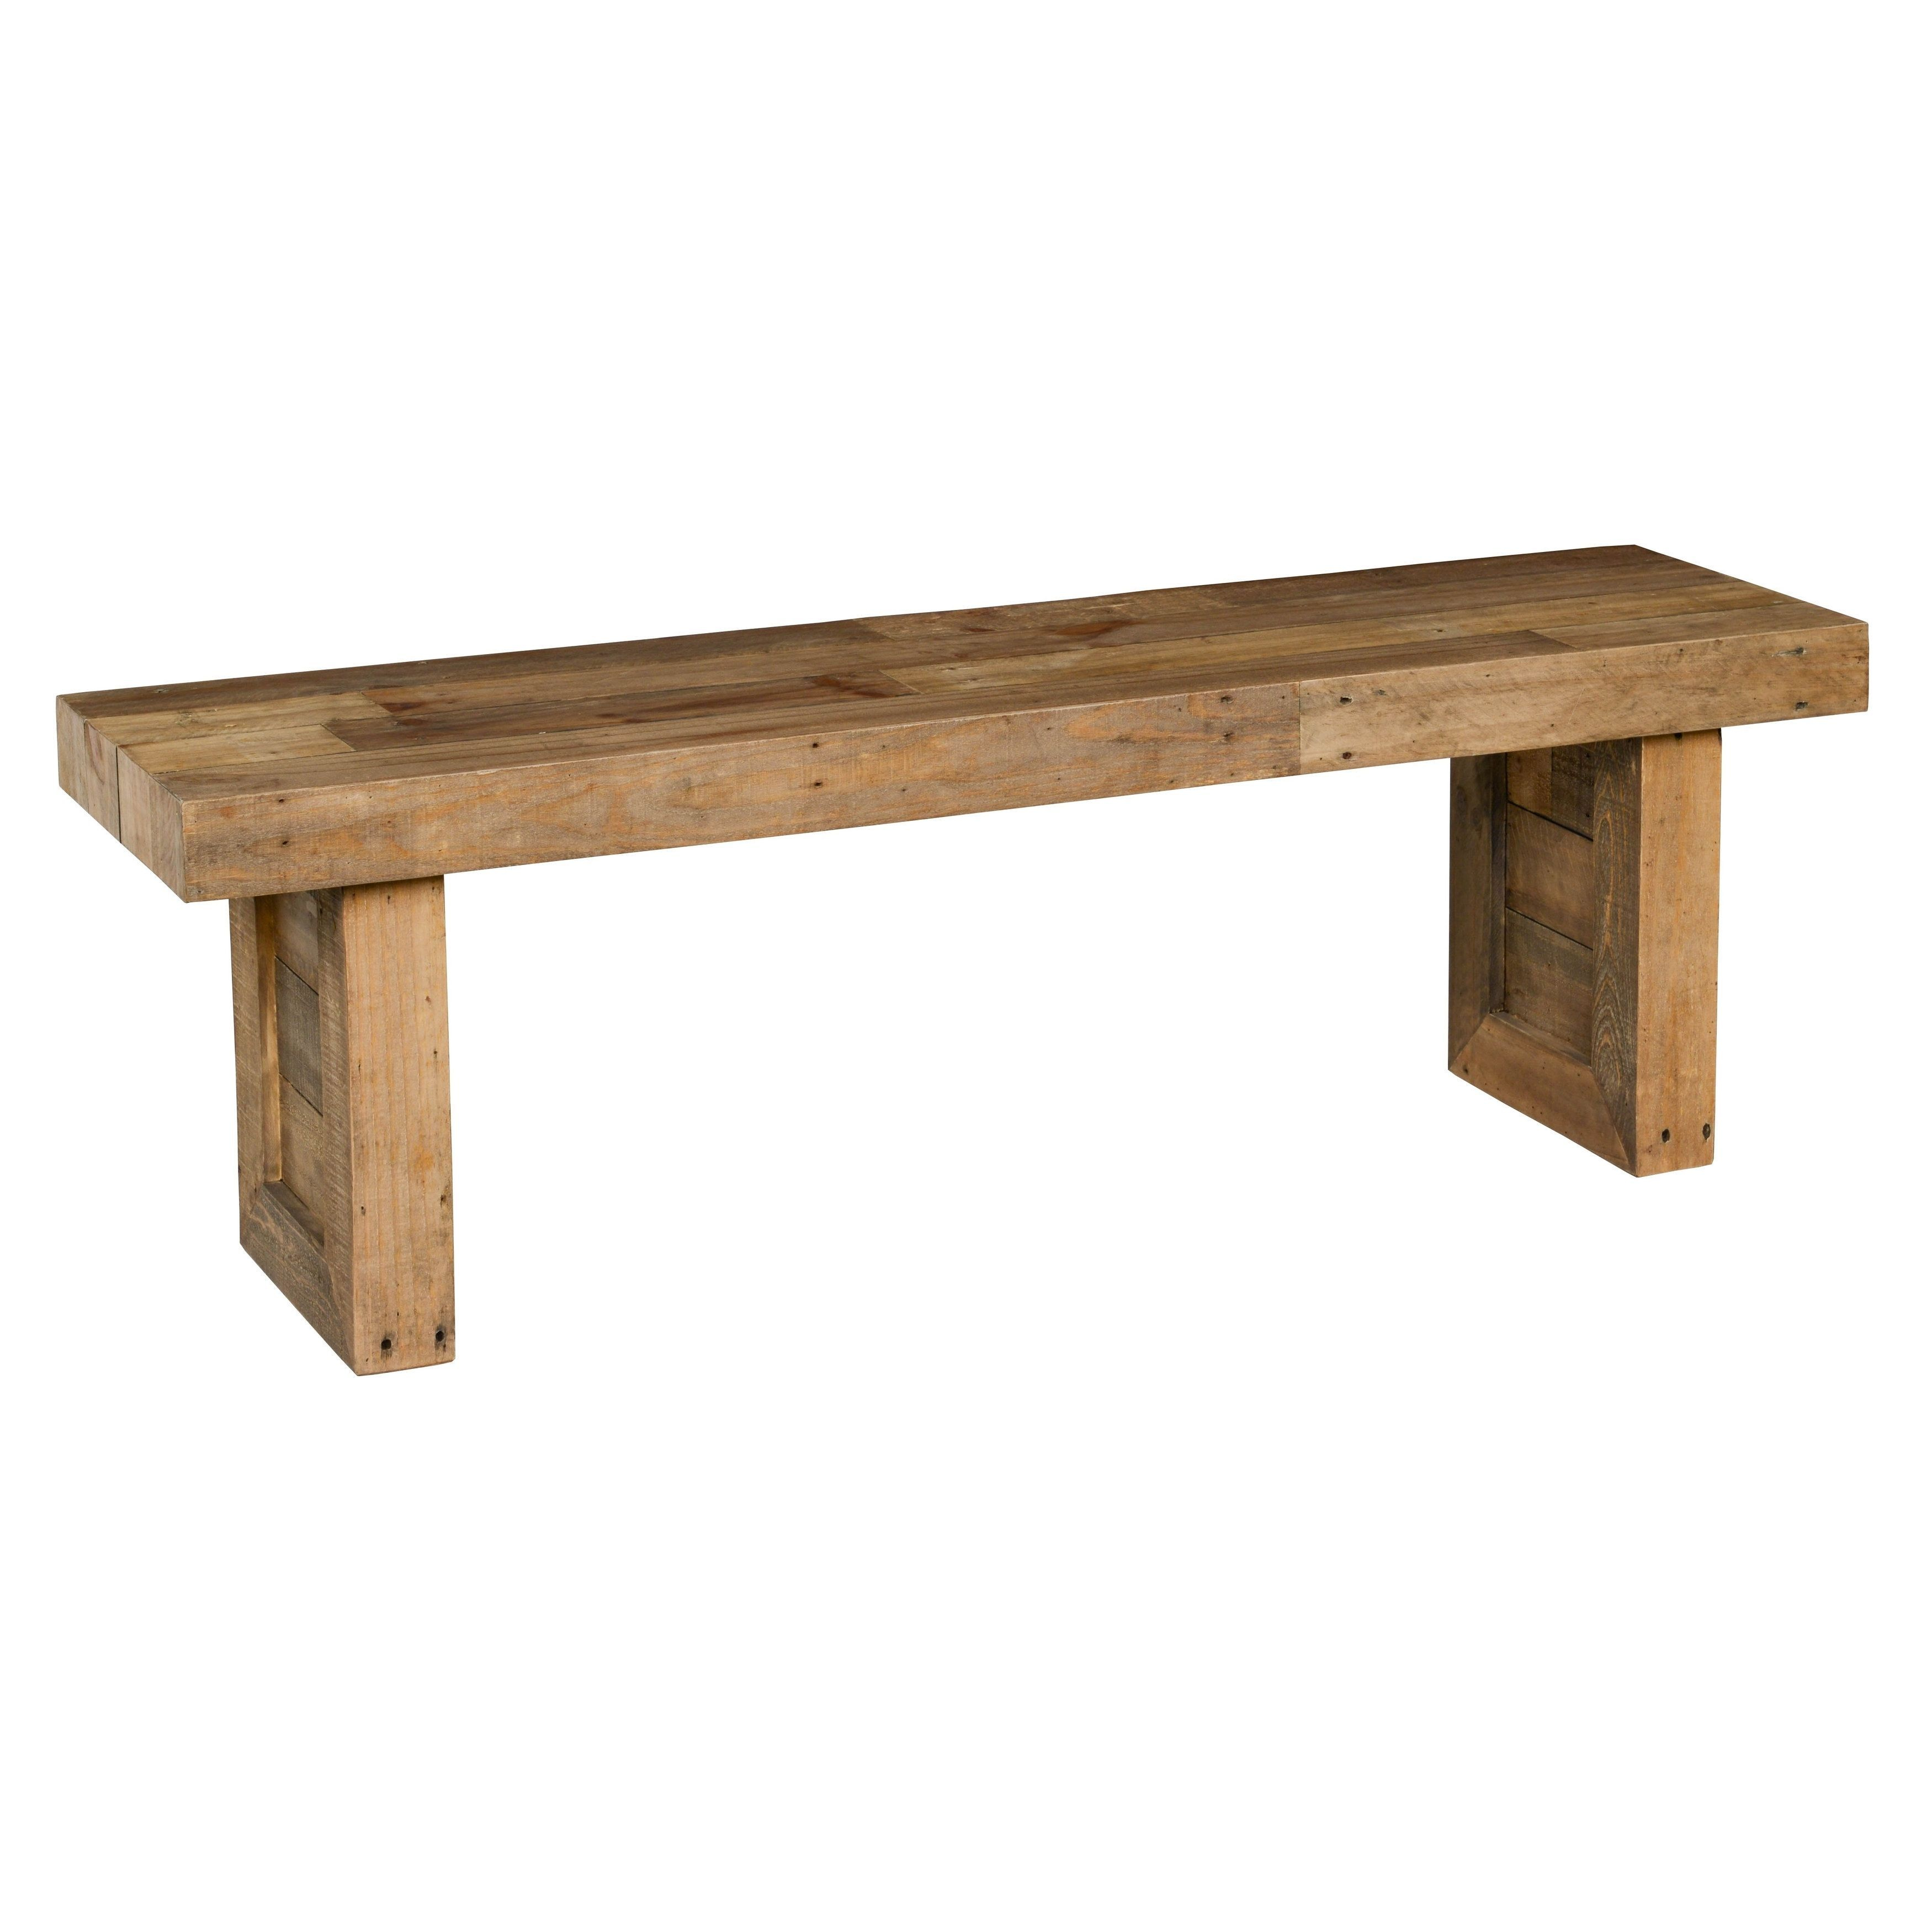 Kosas Home Hand Crafted Natural Recovered Shipping Pallets